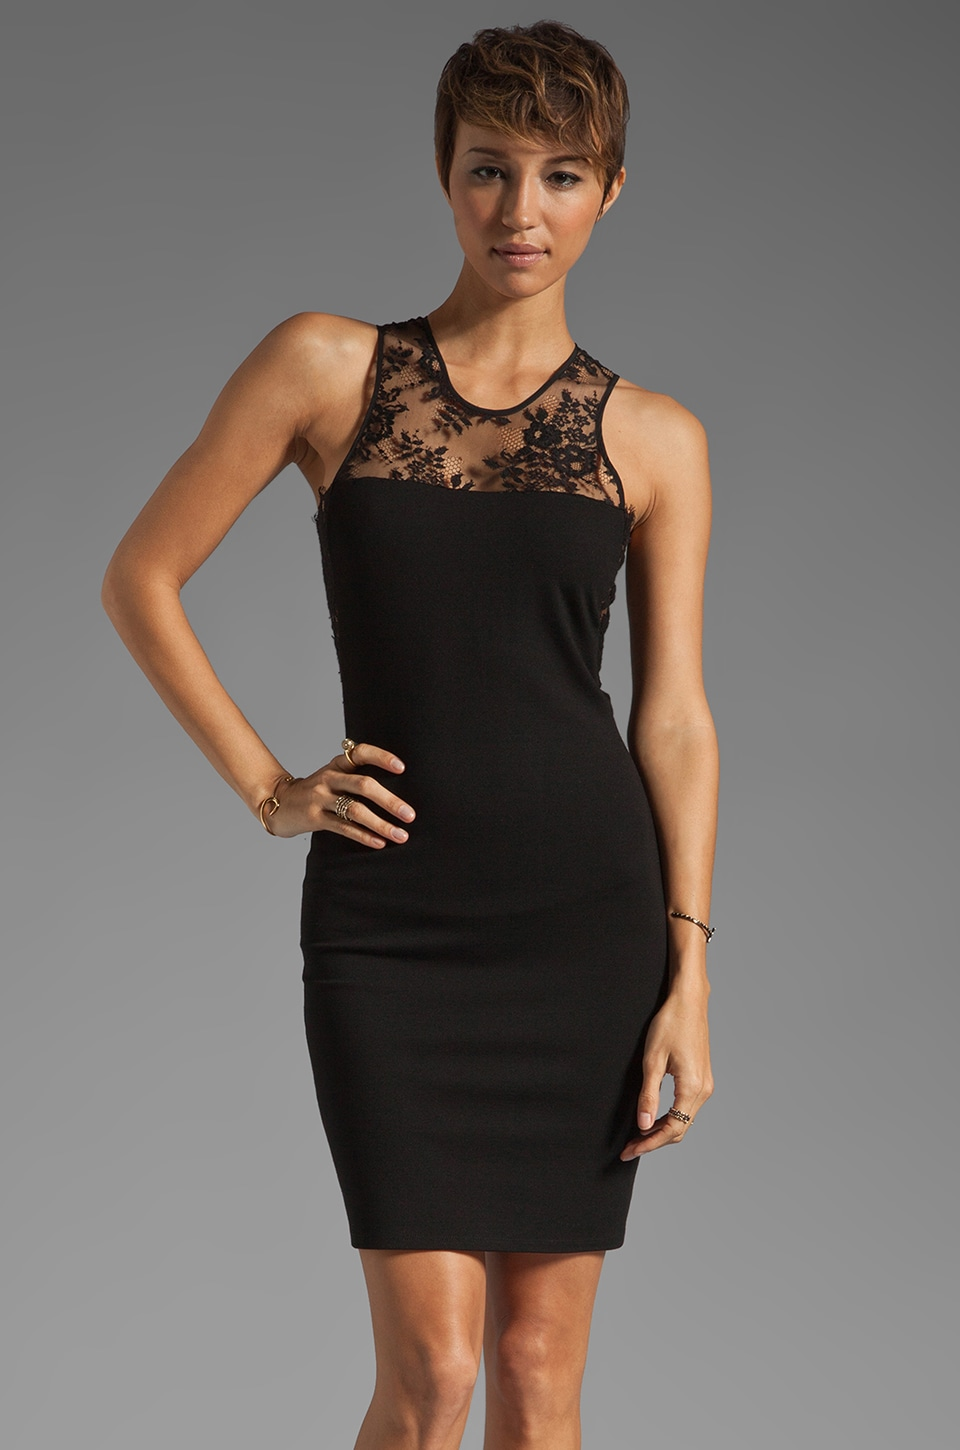 Mason by Michelle Mason Lace Inset Dress in Black